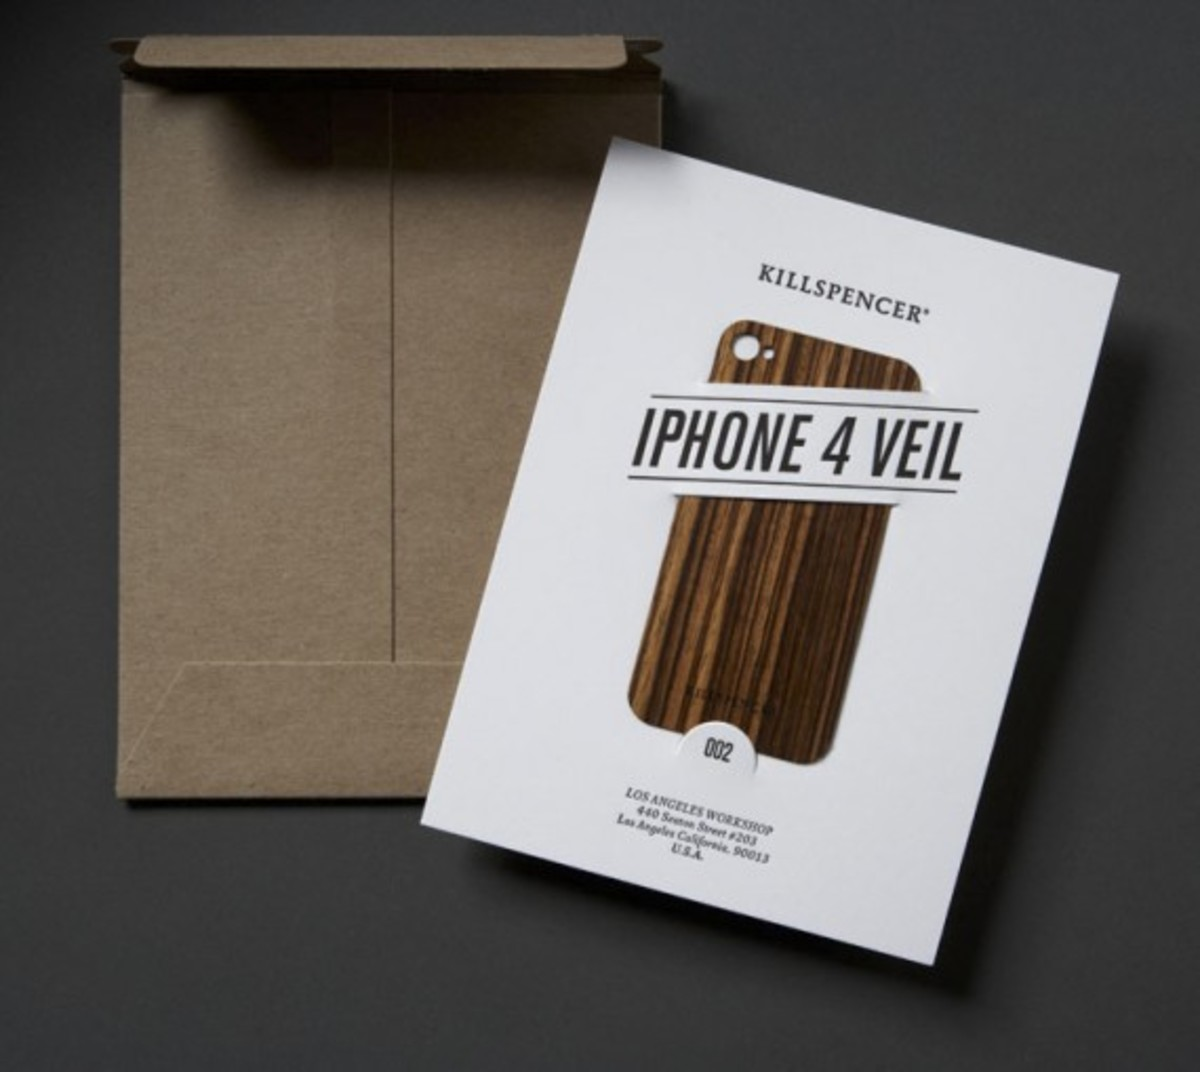 killspencer-zebrawood-iphone-4-veil-04